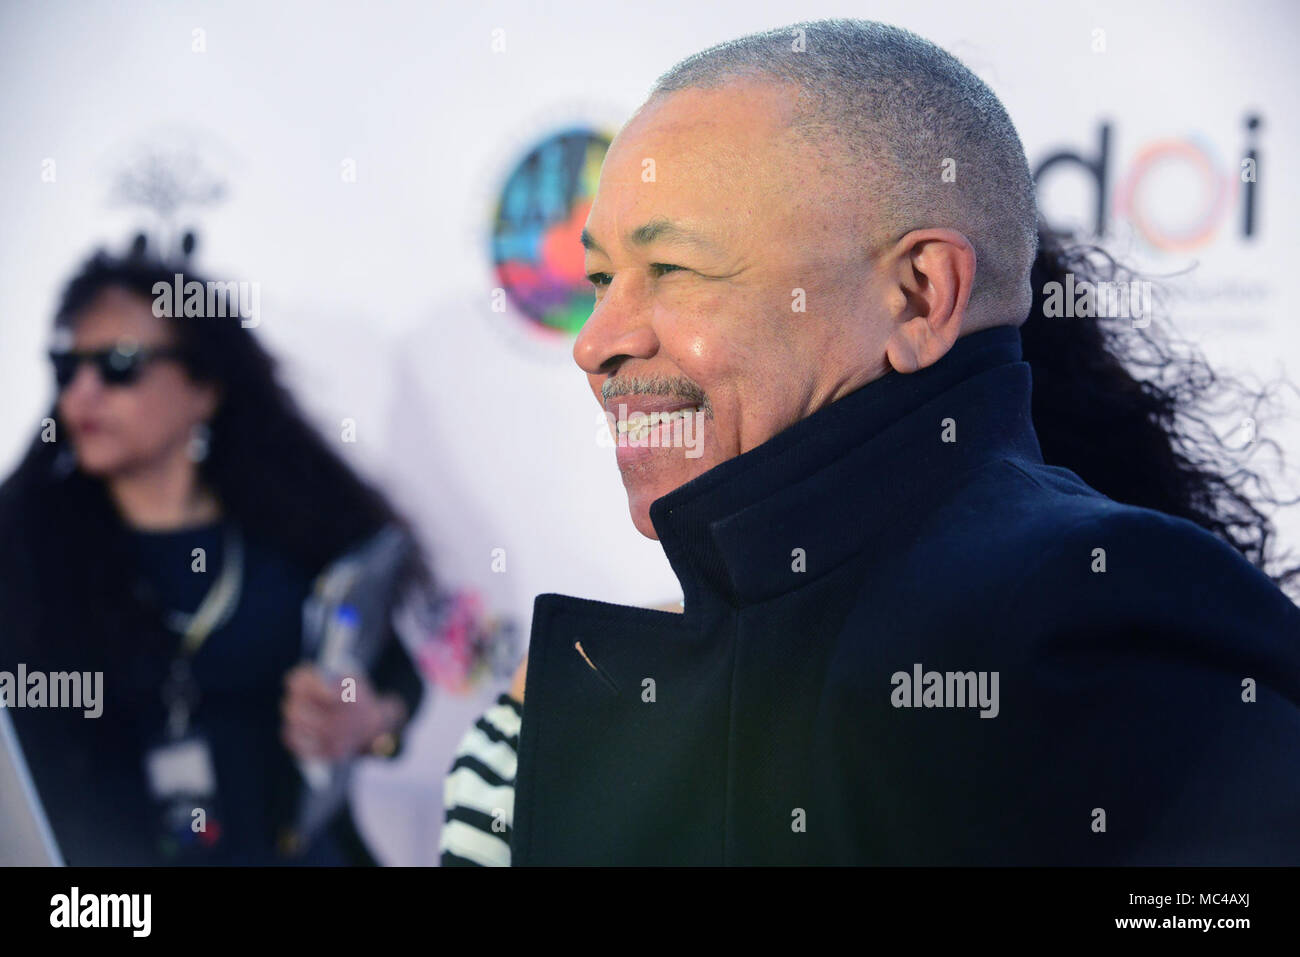 Los Angeles, CA, USA. 12th Apr, 2018. Musician - RALPJ JOHNSON, orginal member of Earth, Wind, and Fire, on the red carpet at The We Are One Benefit Concert for The Arts, supporting music and art in Los Angeles Unified School District, The Dorothy Chandler Pavillion, Los Angeles, California, USA, April 12, 2018. The first Annual benefit concert for arts education for the LAUSD.Credit Image cr Scott Mitchell/ZUMA Press Credit: Scott Mitchell/ZUMA Wire/Alamy Live News - Stock Image